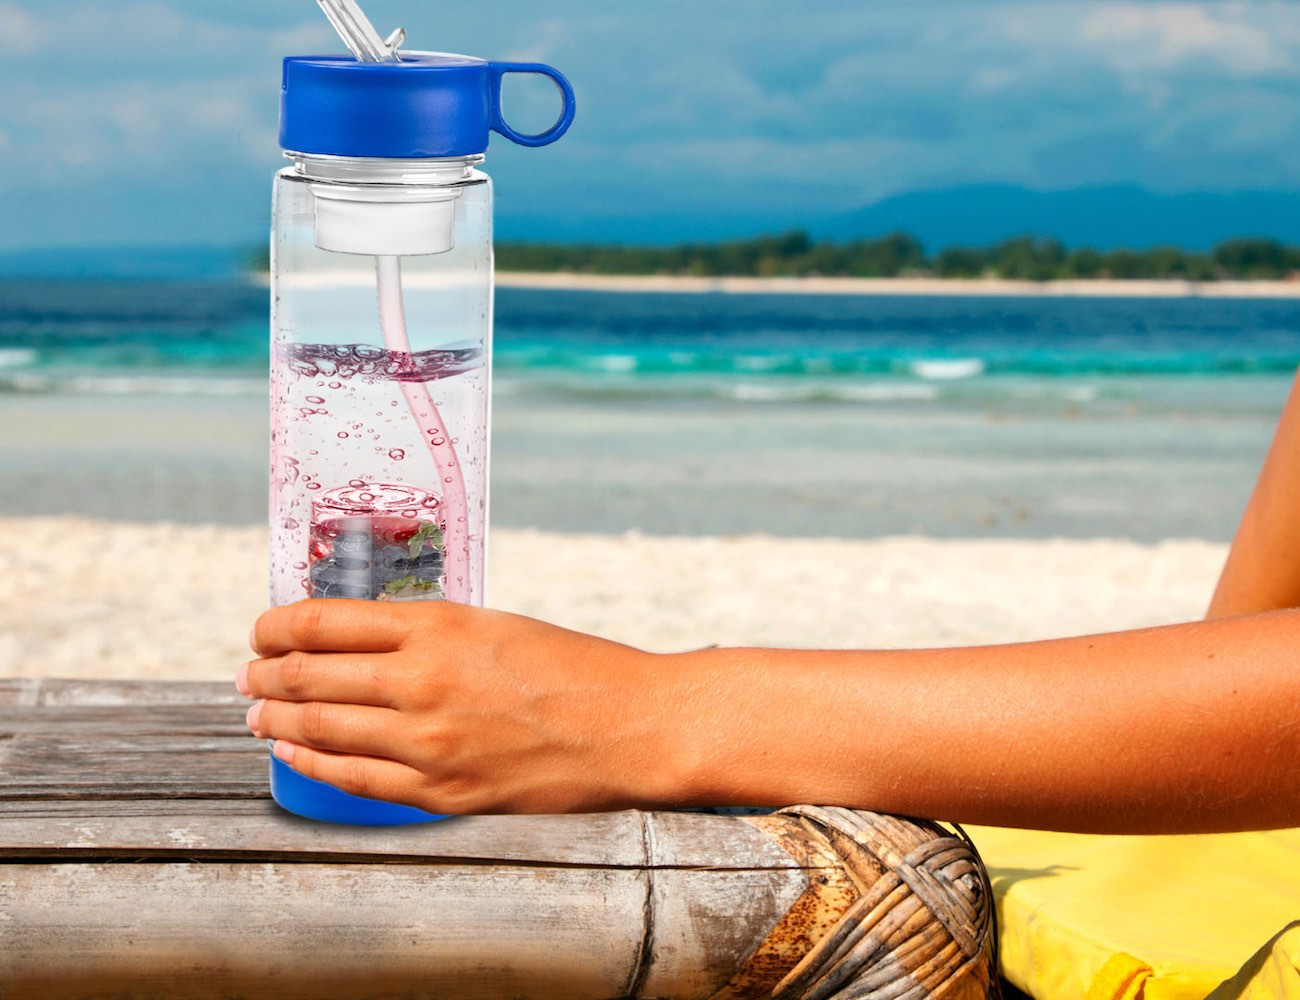 Innovative 2-in-1 Filter/Infuser Water Bottle